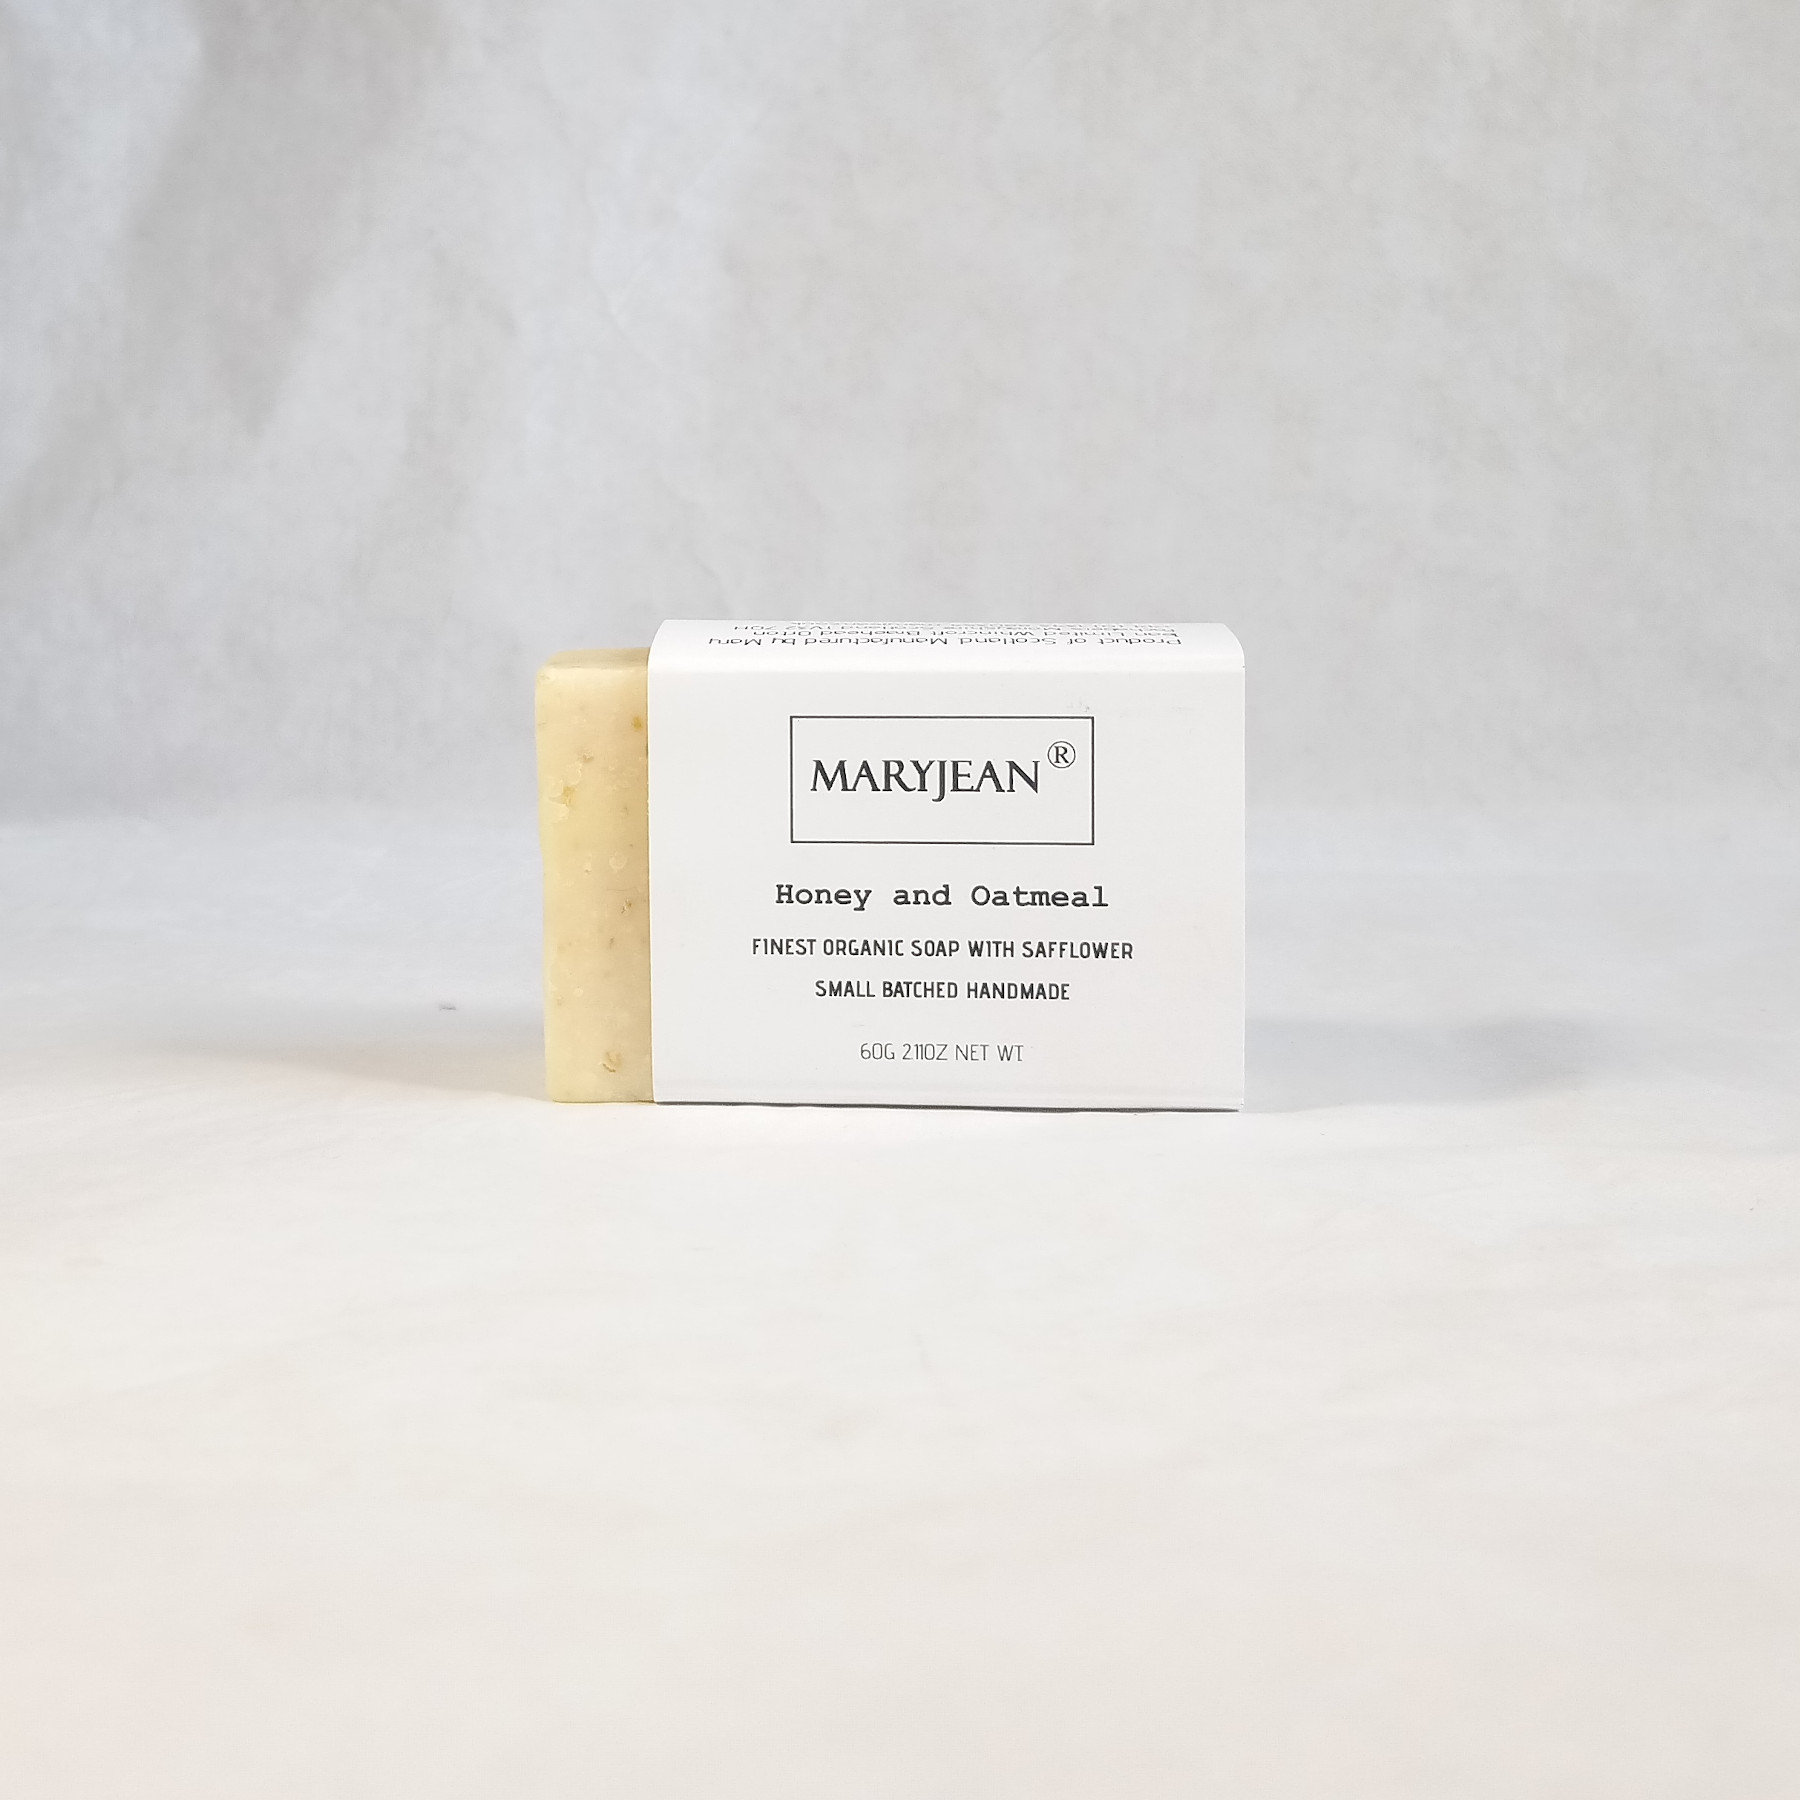 Use this vegetable soap bar exfoliate and moisturise sensitive dry skin resulting in smoother skin complexion Travel Size Organic Scottish Exfoliating Oatmeal Body Scrub Soap Handmade With Honey